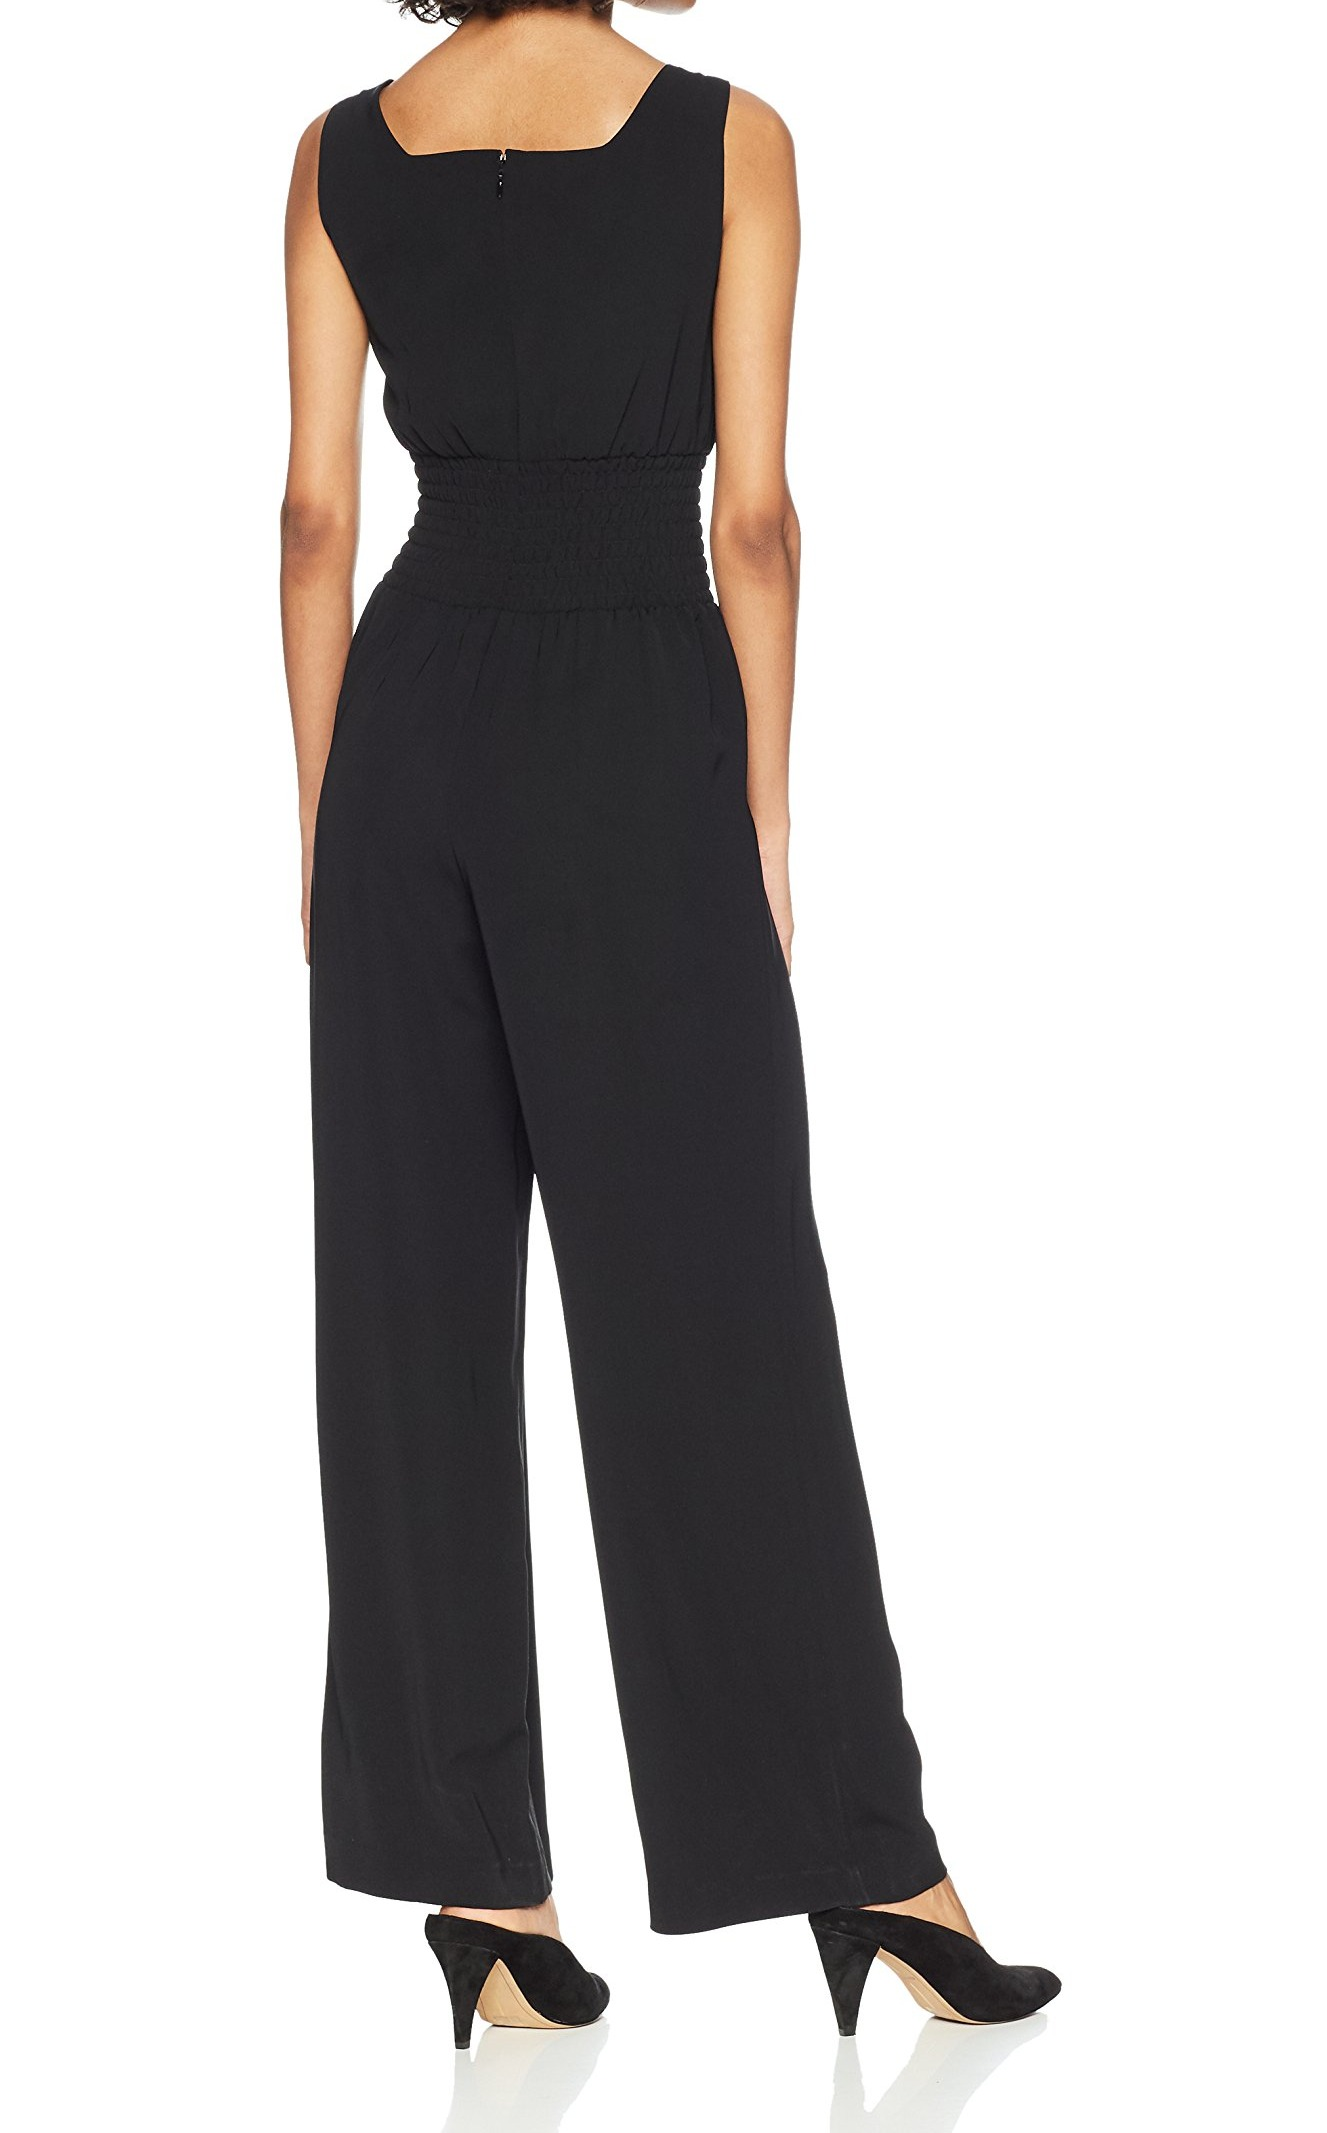 6f6aa4977d1 We have more Nine West in Size 4 - Click Here Click to see all Womens  Jumpsuits   Rompers in Size 4